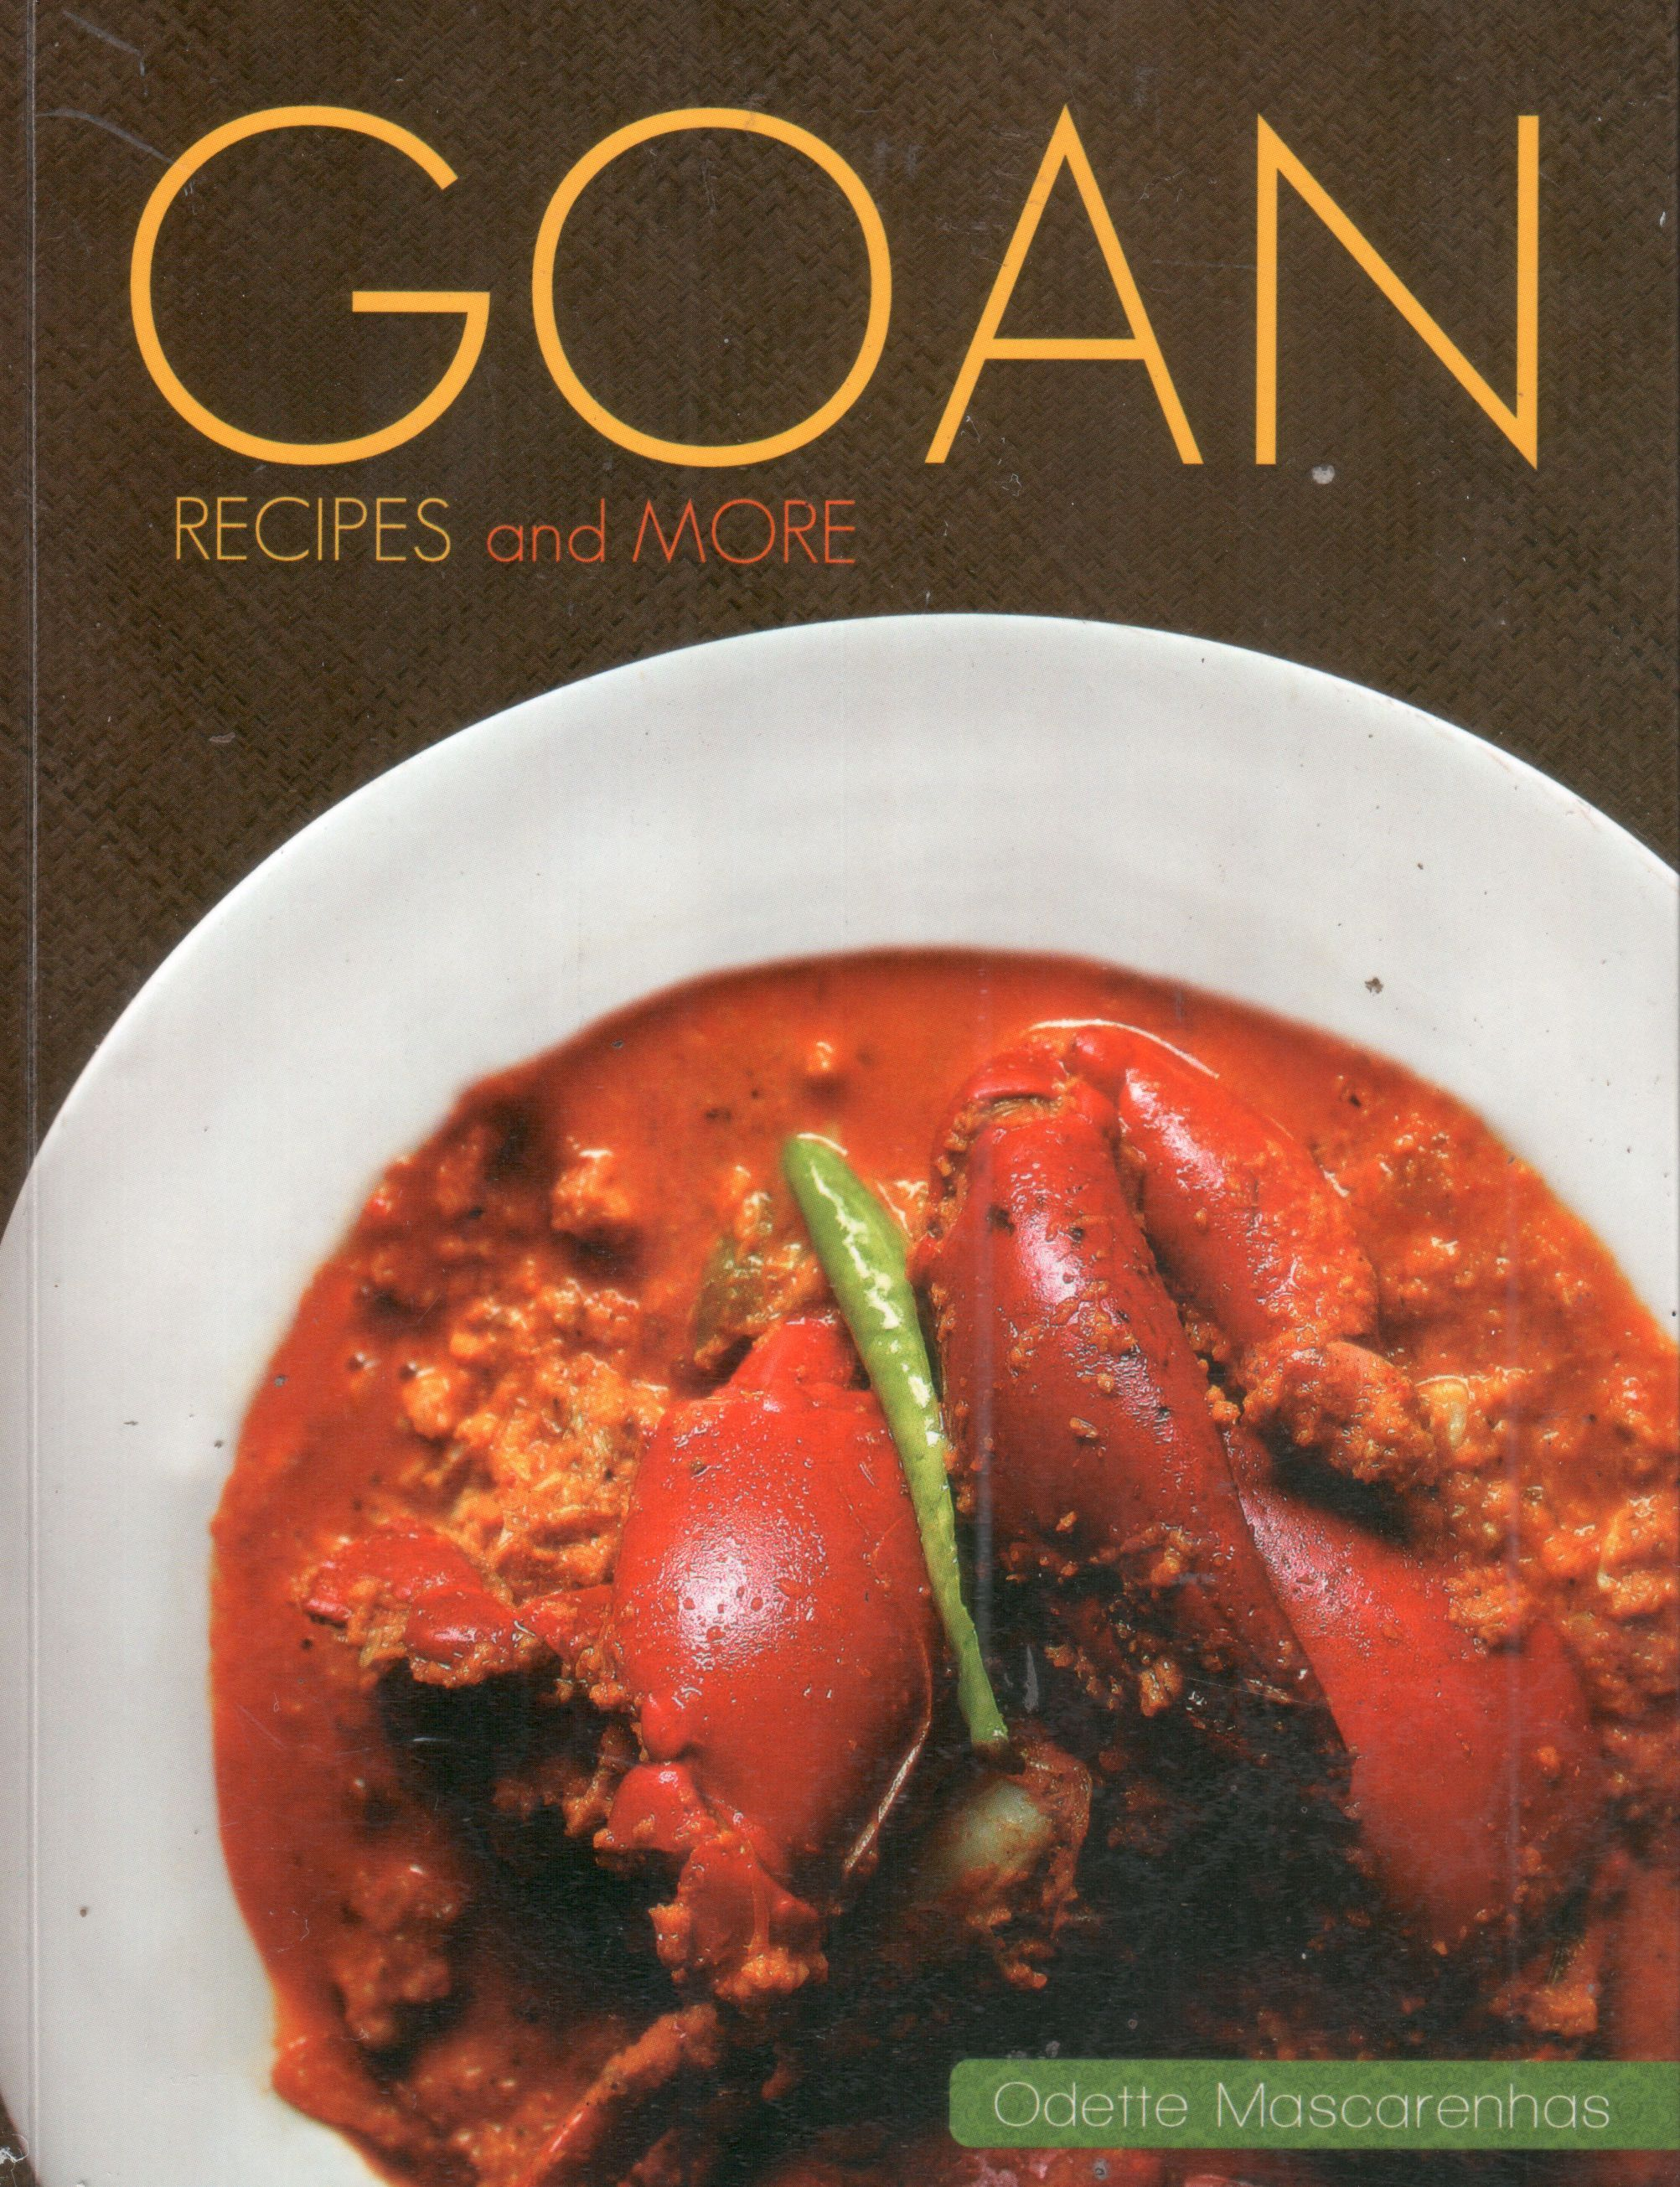 A colourful cookbook and more about tasty goan food goa1556 a colourful cookbook and more about tasty goan food forumfinder Images